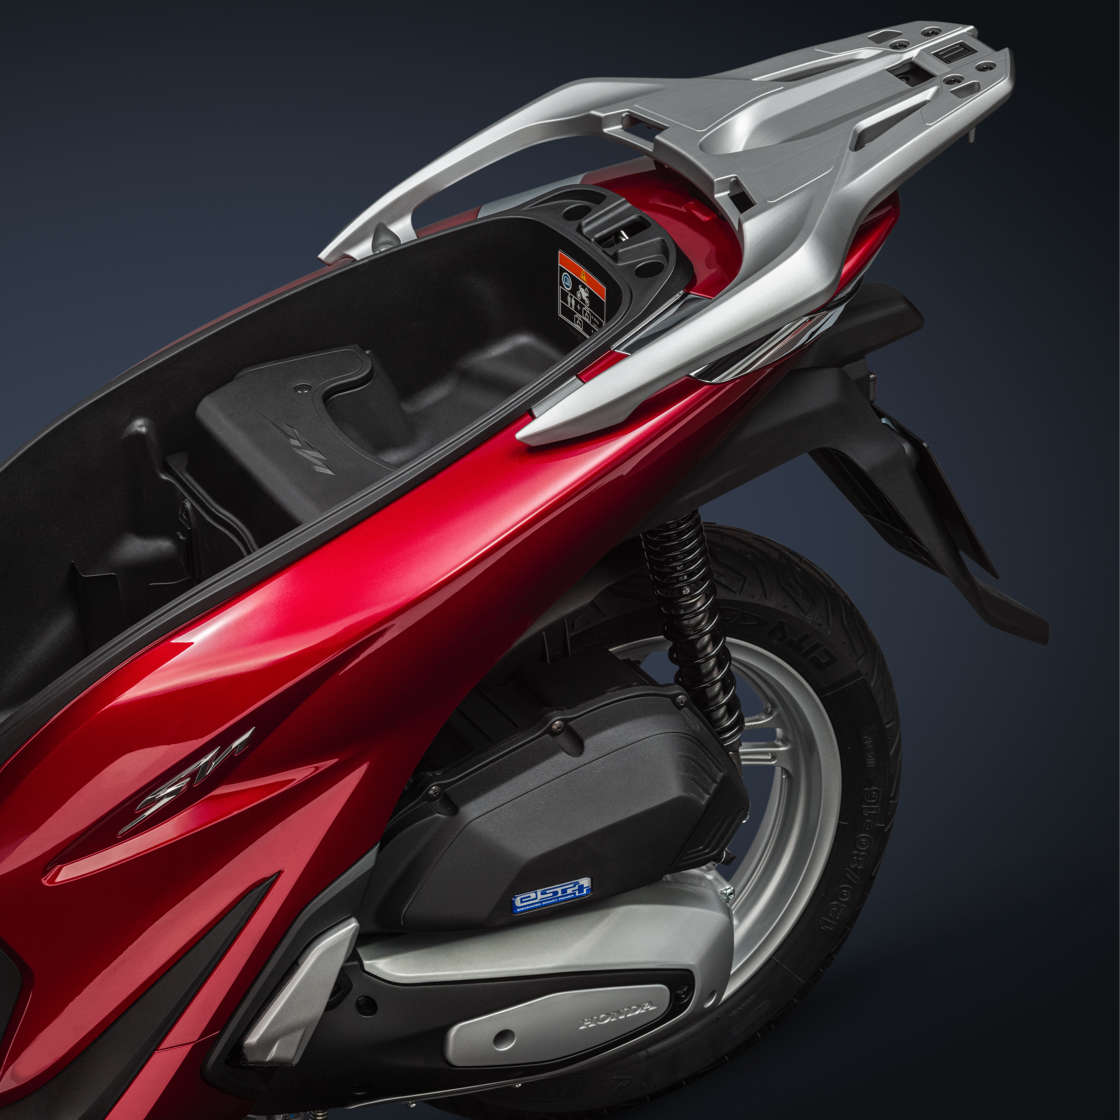 Honda-SH125i, zoom on seat storage